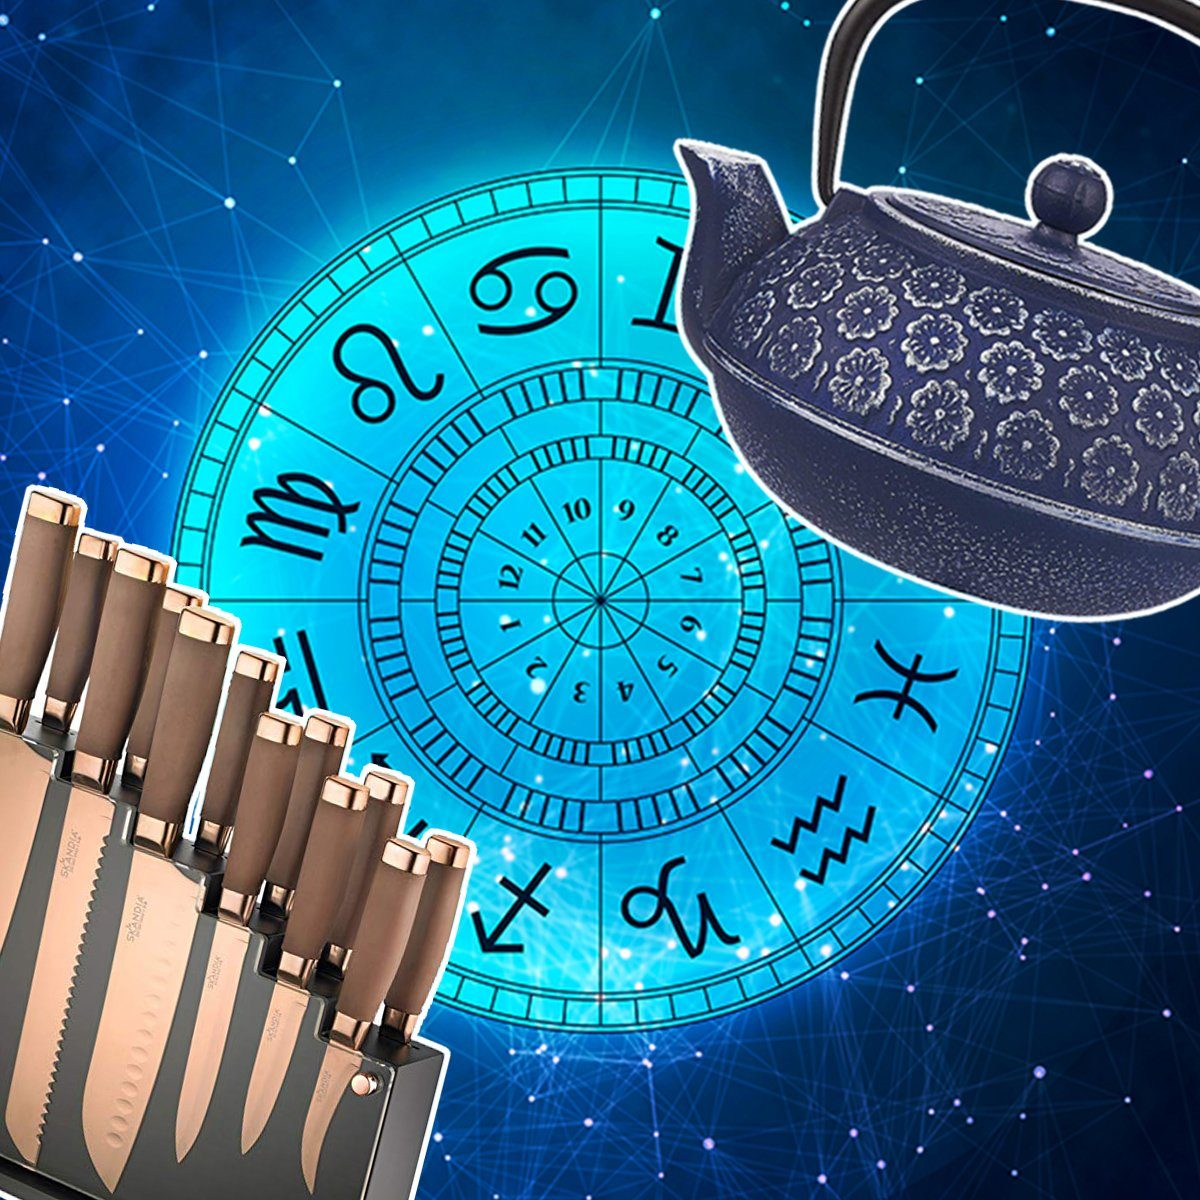 The Kitchen Accessories You Need, Based on Your Zodiac Sign